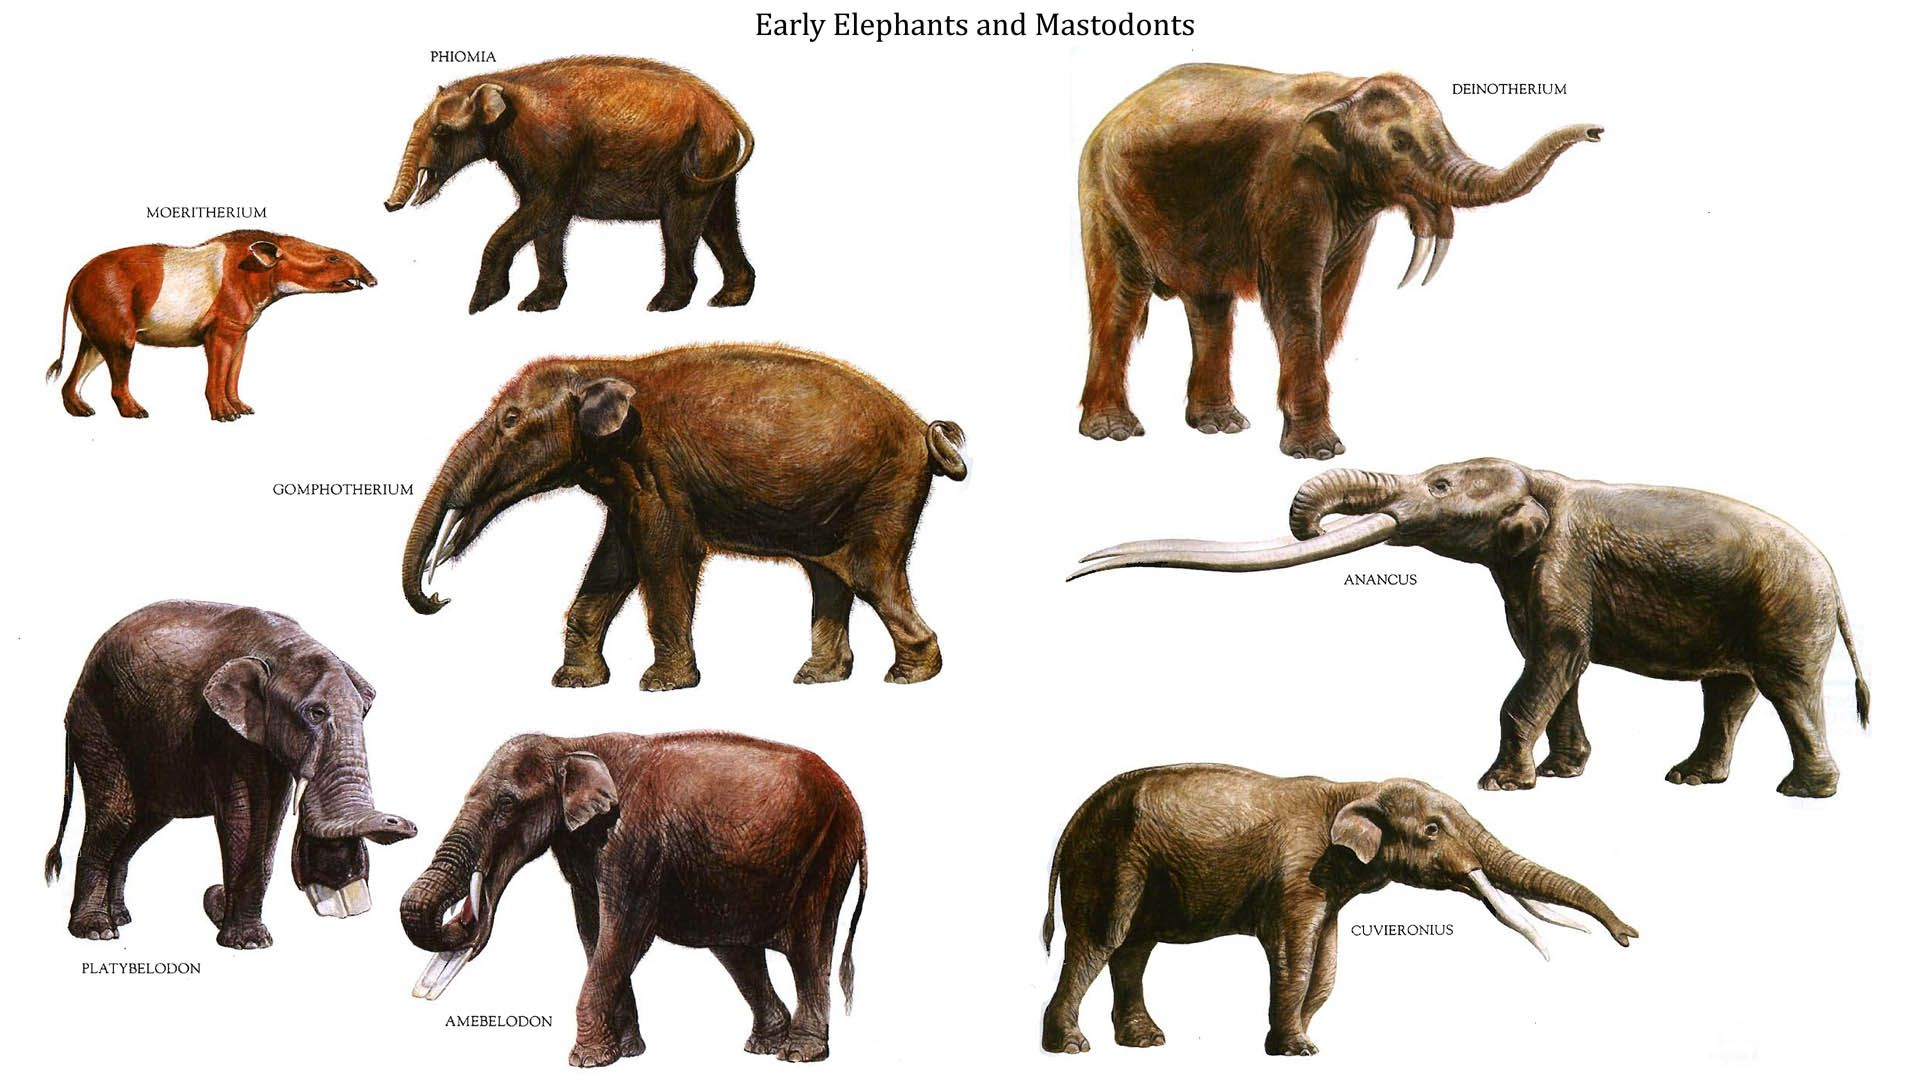 Early Pachyderms. Row 1: Moeritherium, Phomia, Dinotherium ...